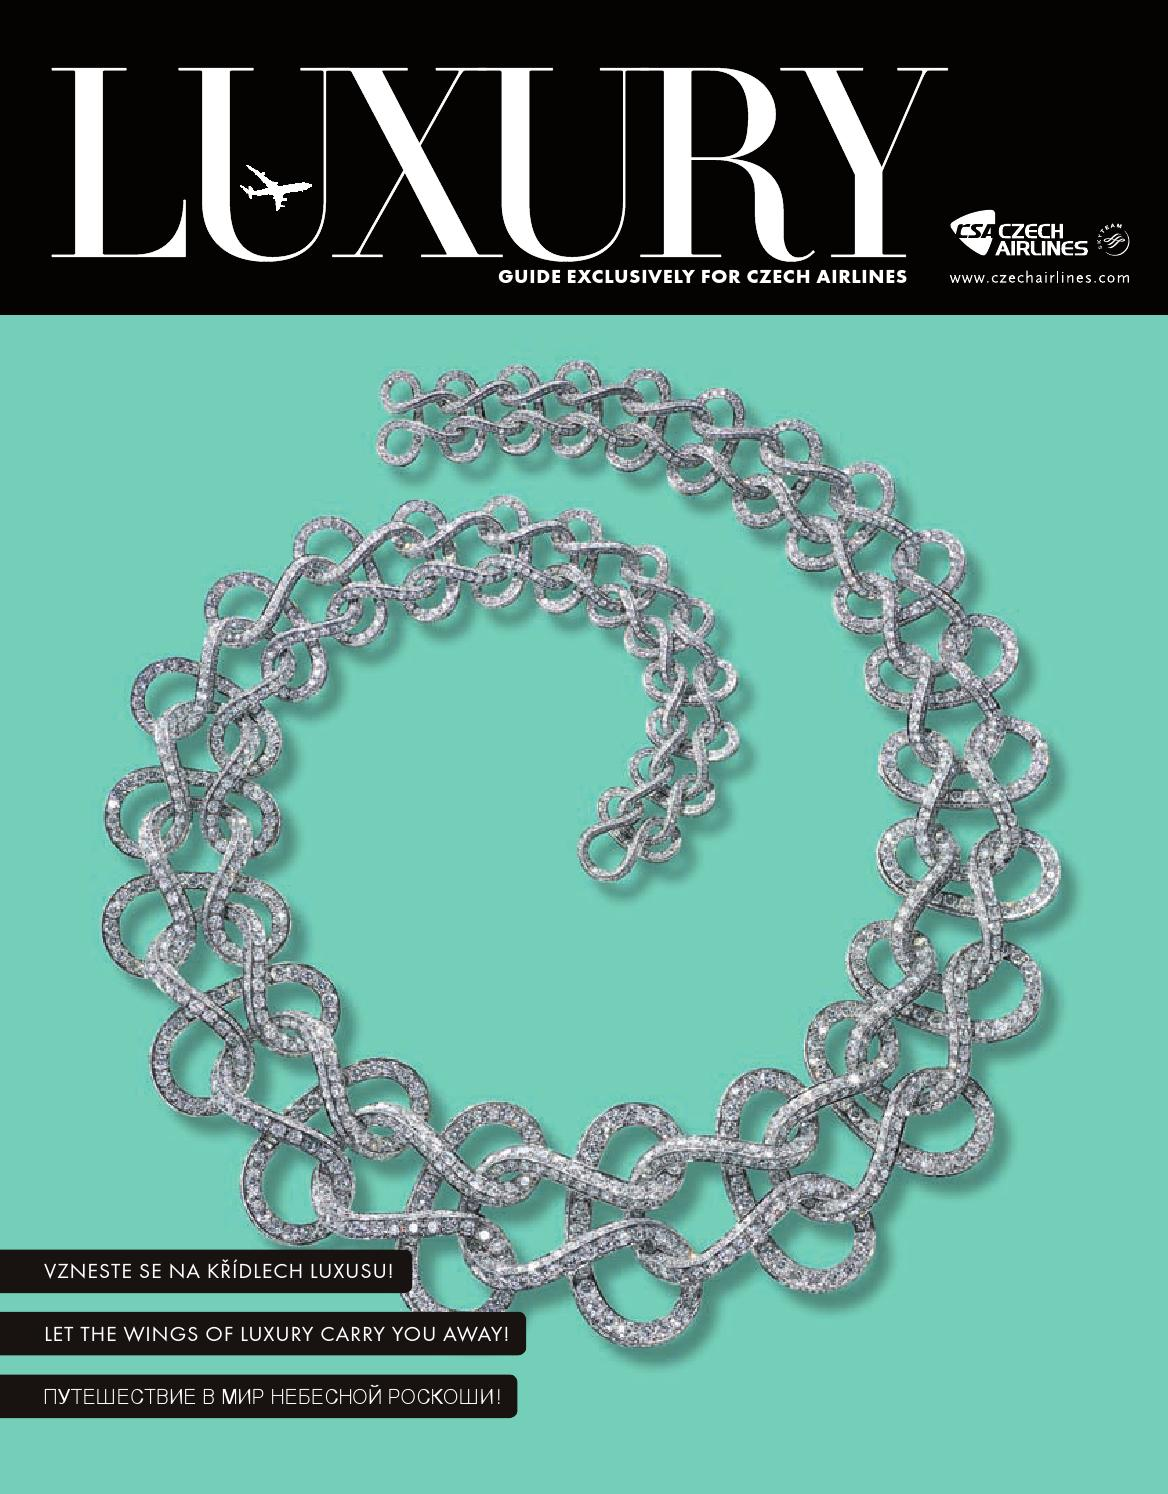 14 Luxury Guide for Czech Airlines 04/2015 by Kamil Sojka